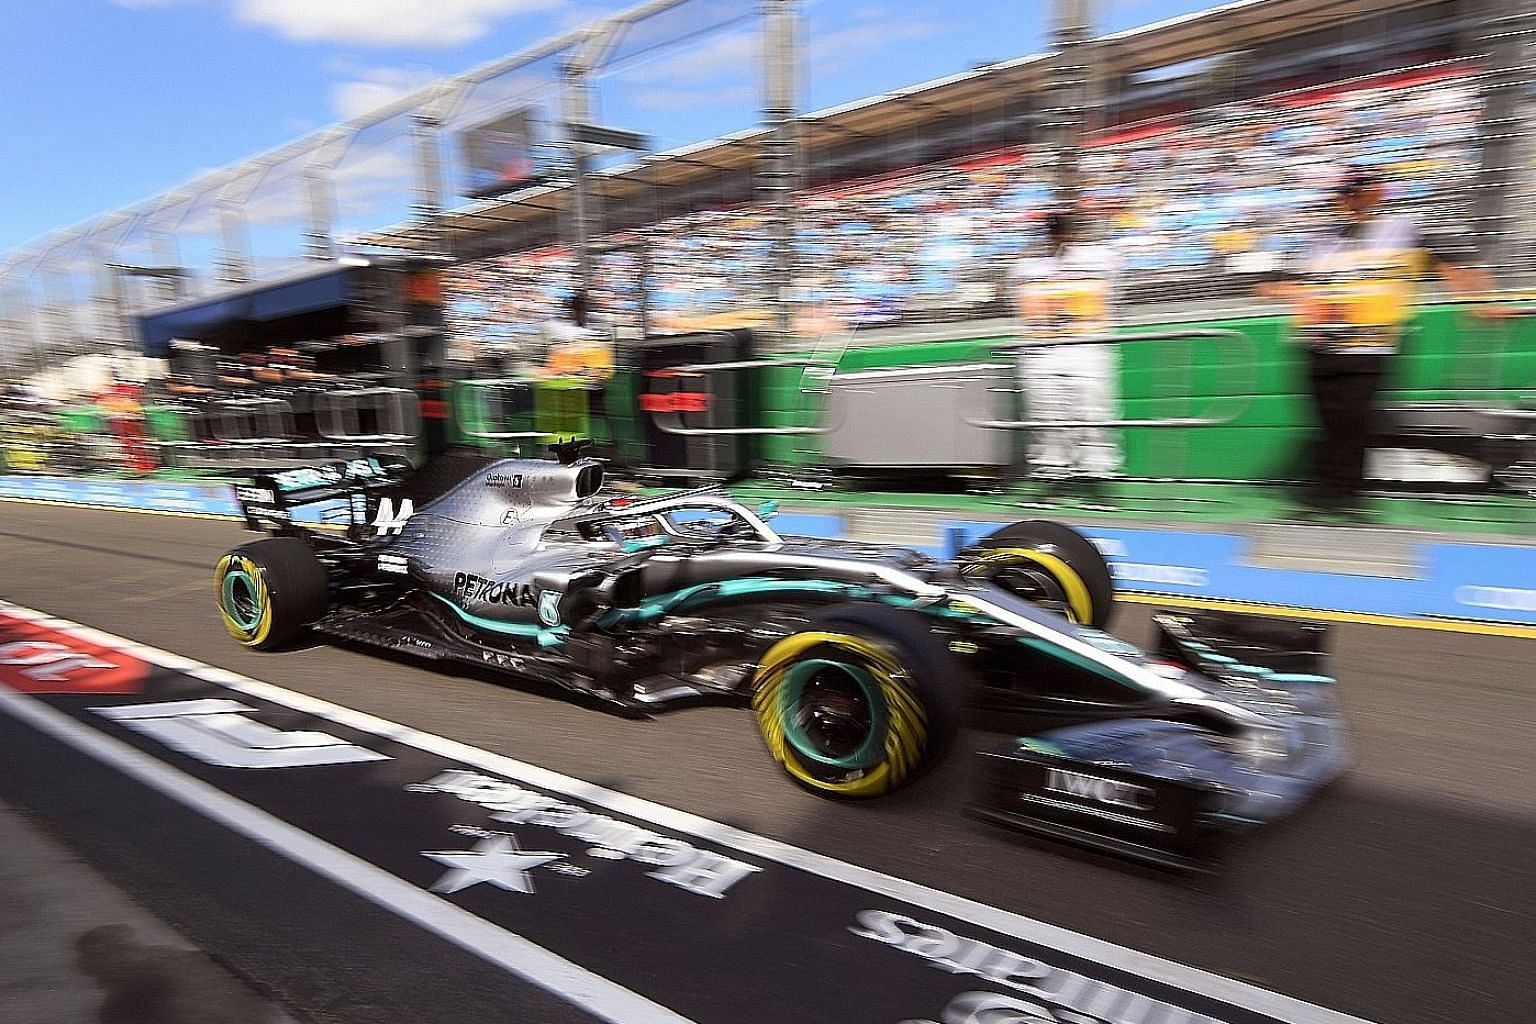 Mercedes' five-time world champion Lewis Hamilton making his way out of the pits during first practice at the Australian Grand Prix in Melbourne yesterday.